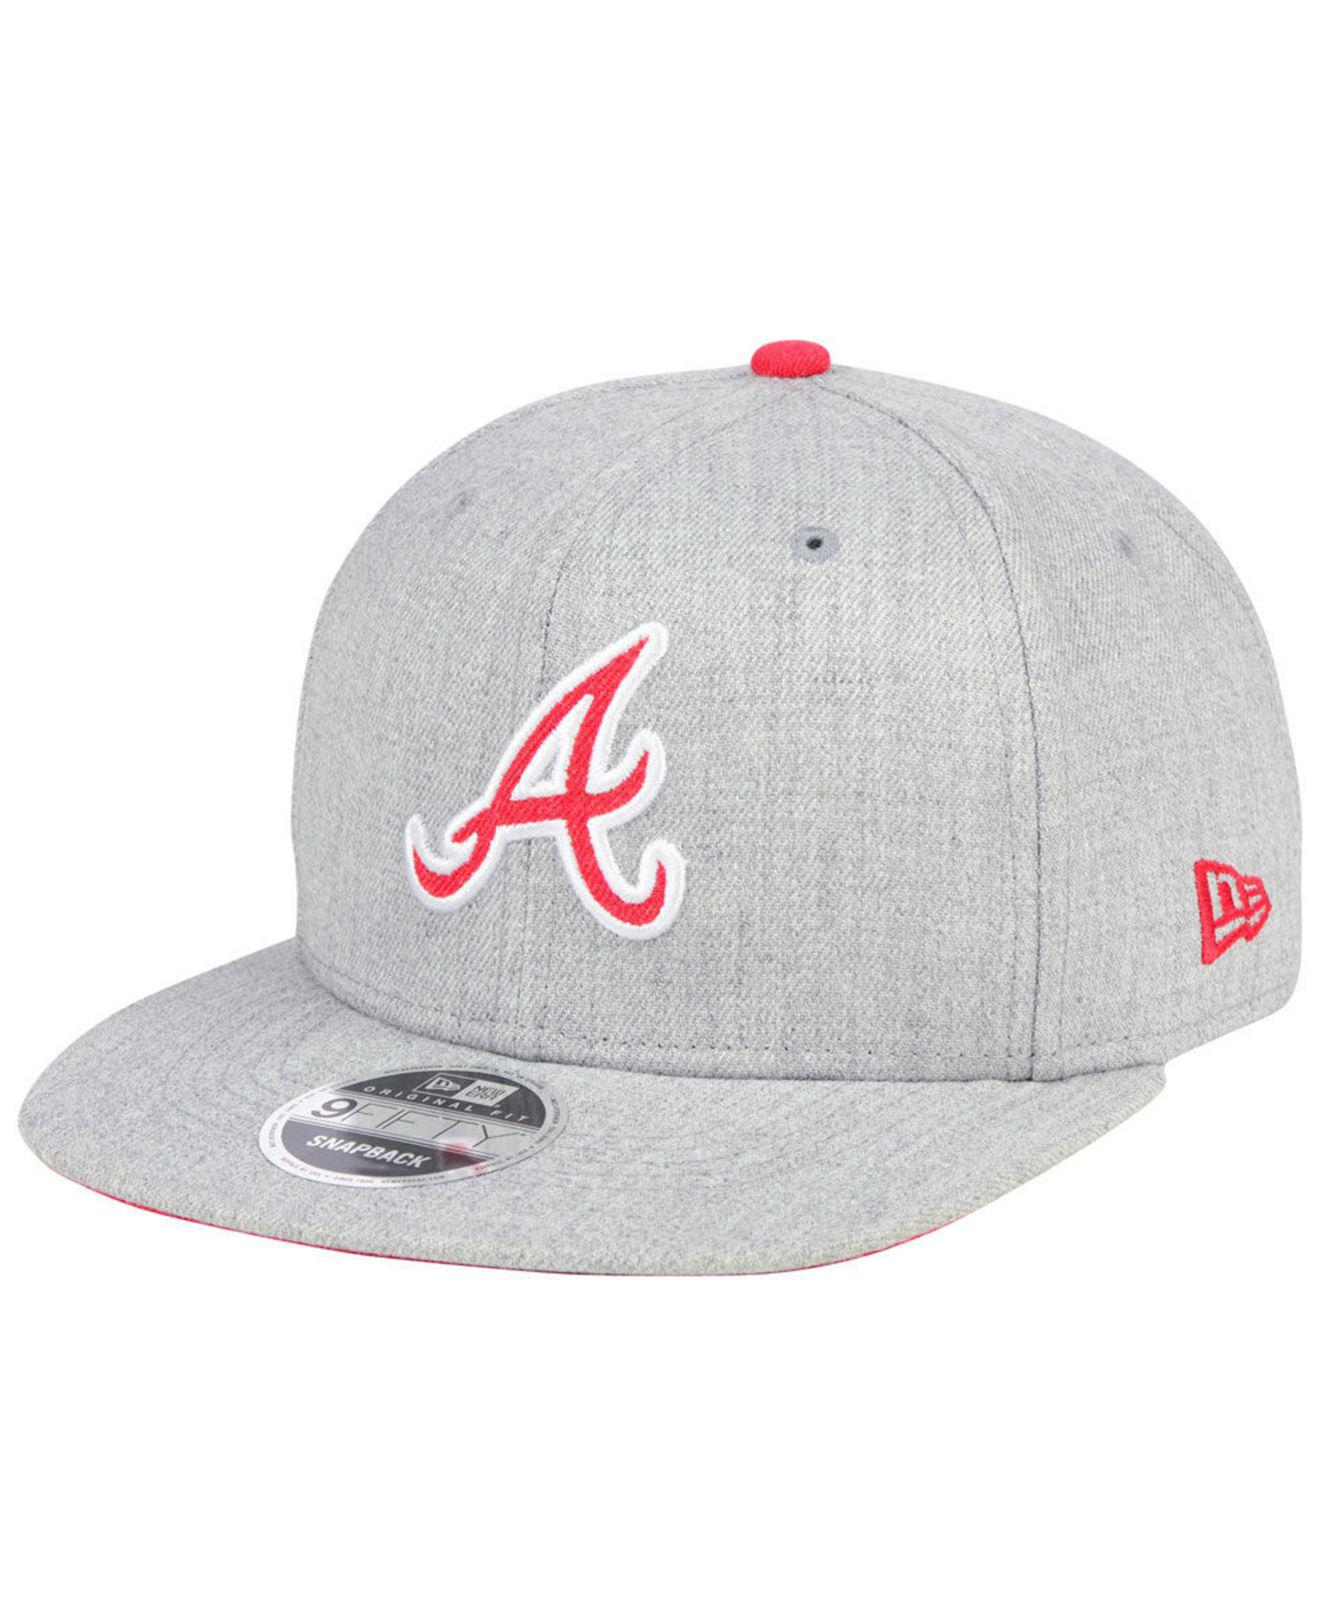 finest selection 8aa69 dd568 Lyst - KTZ Atlanta Braves Heather Hype 9fifty Snapback Cap in Gray ...